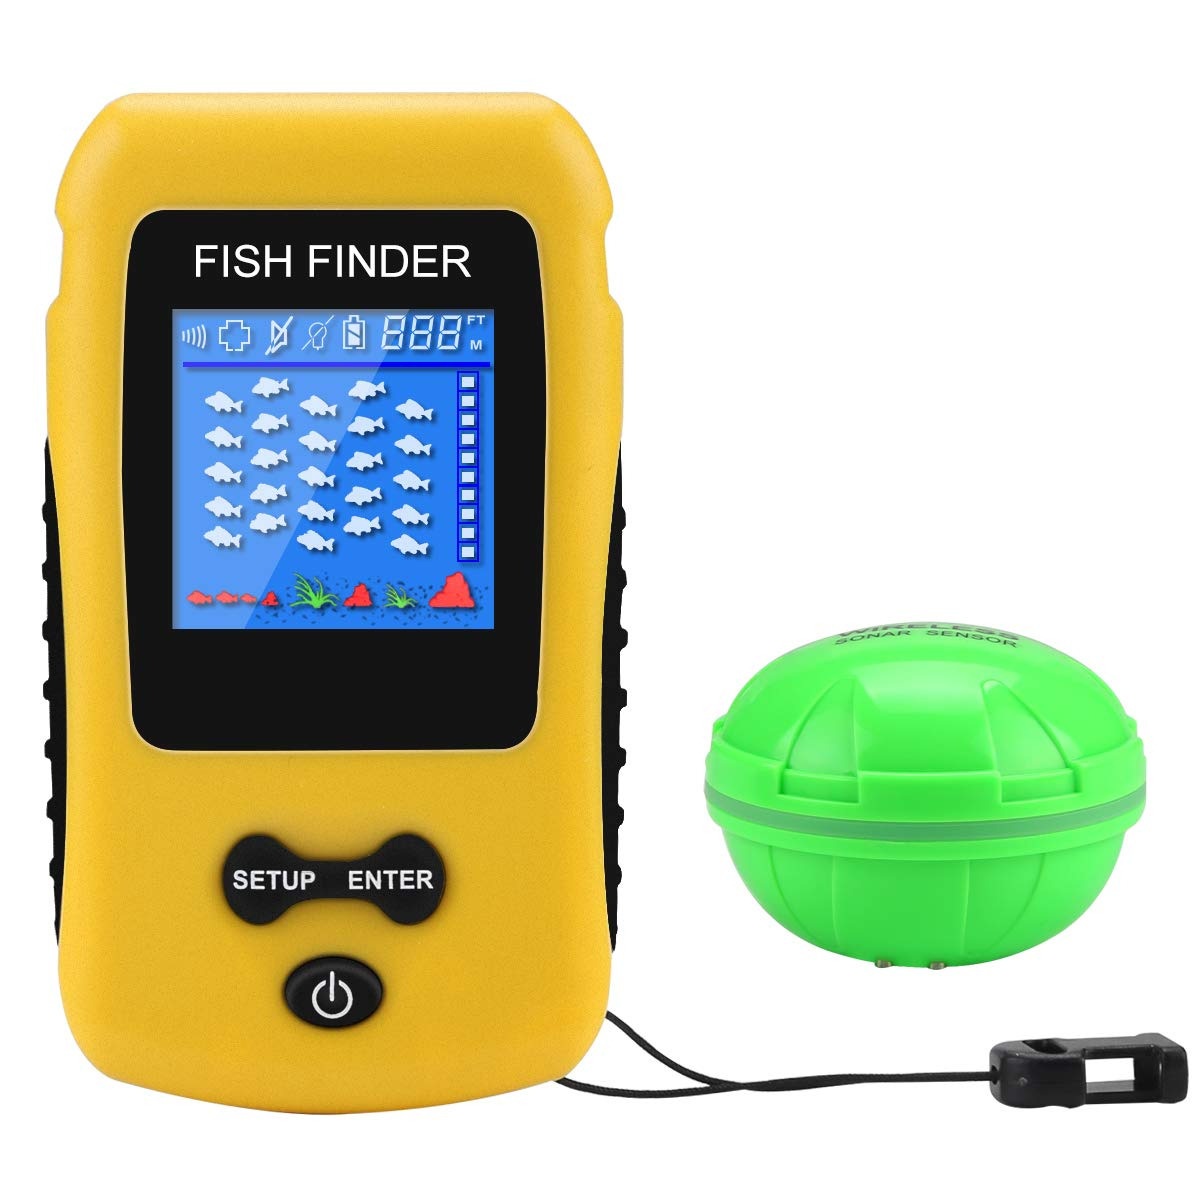 Portable Fish Finder Wireless Transducer Fishfinder for Boat,Kayak Ice Fishing, Shore Fishing and Sea Fashing by Adkwse